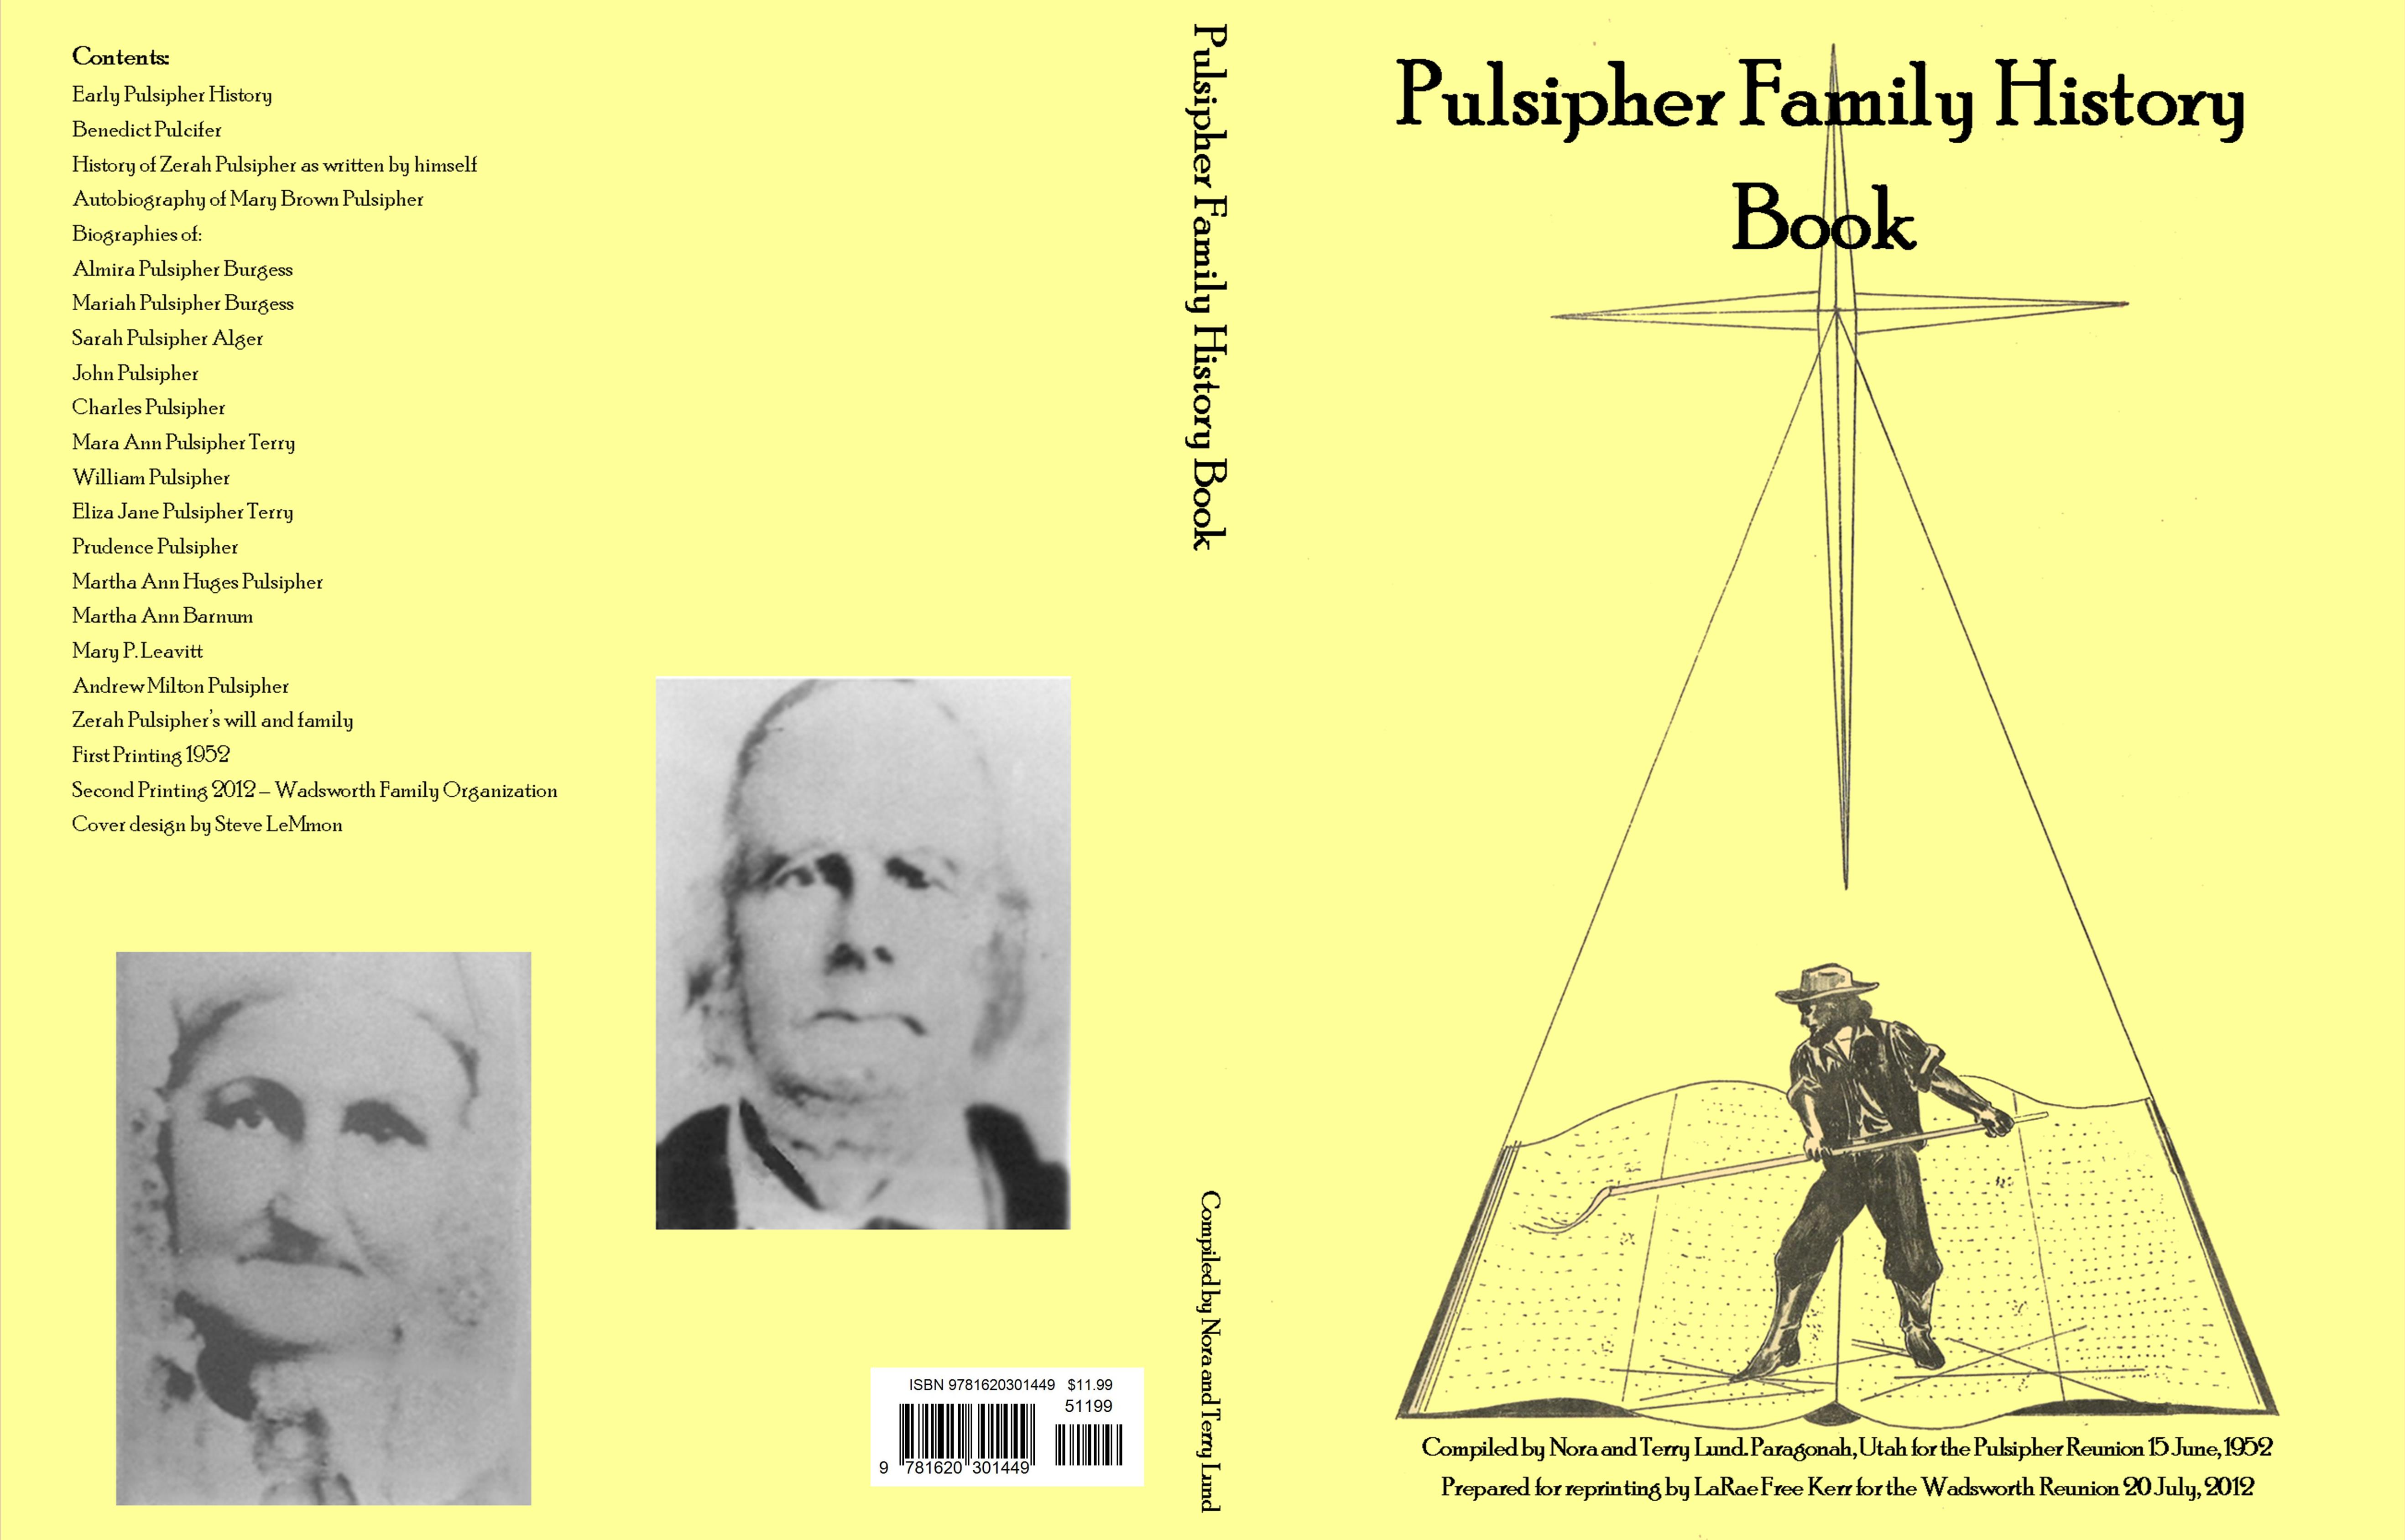 Pulsipher Family History Book cover image